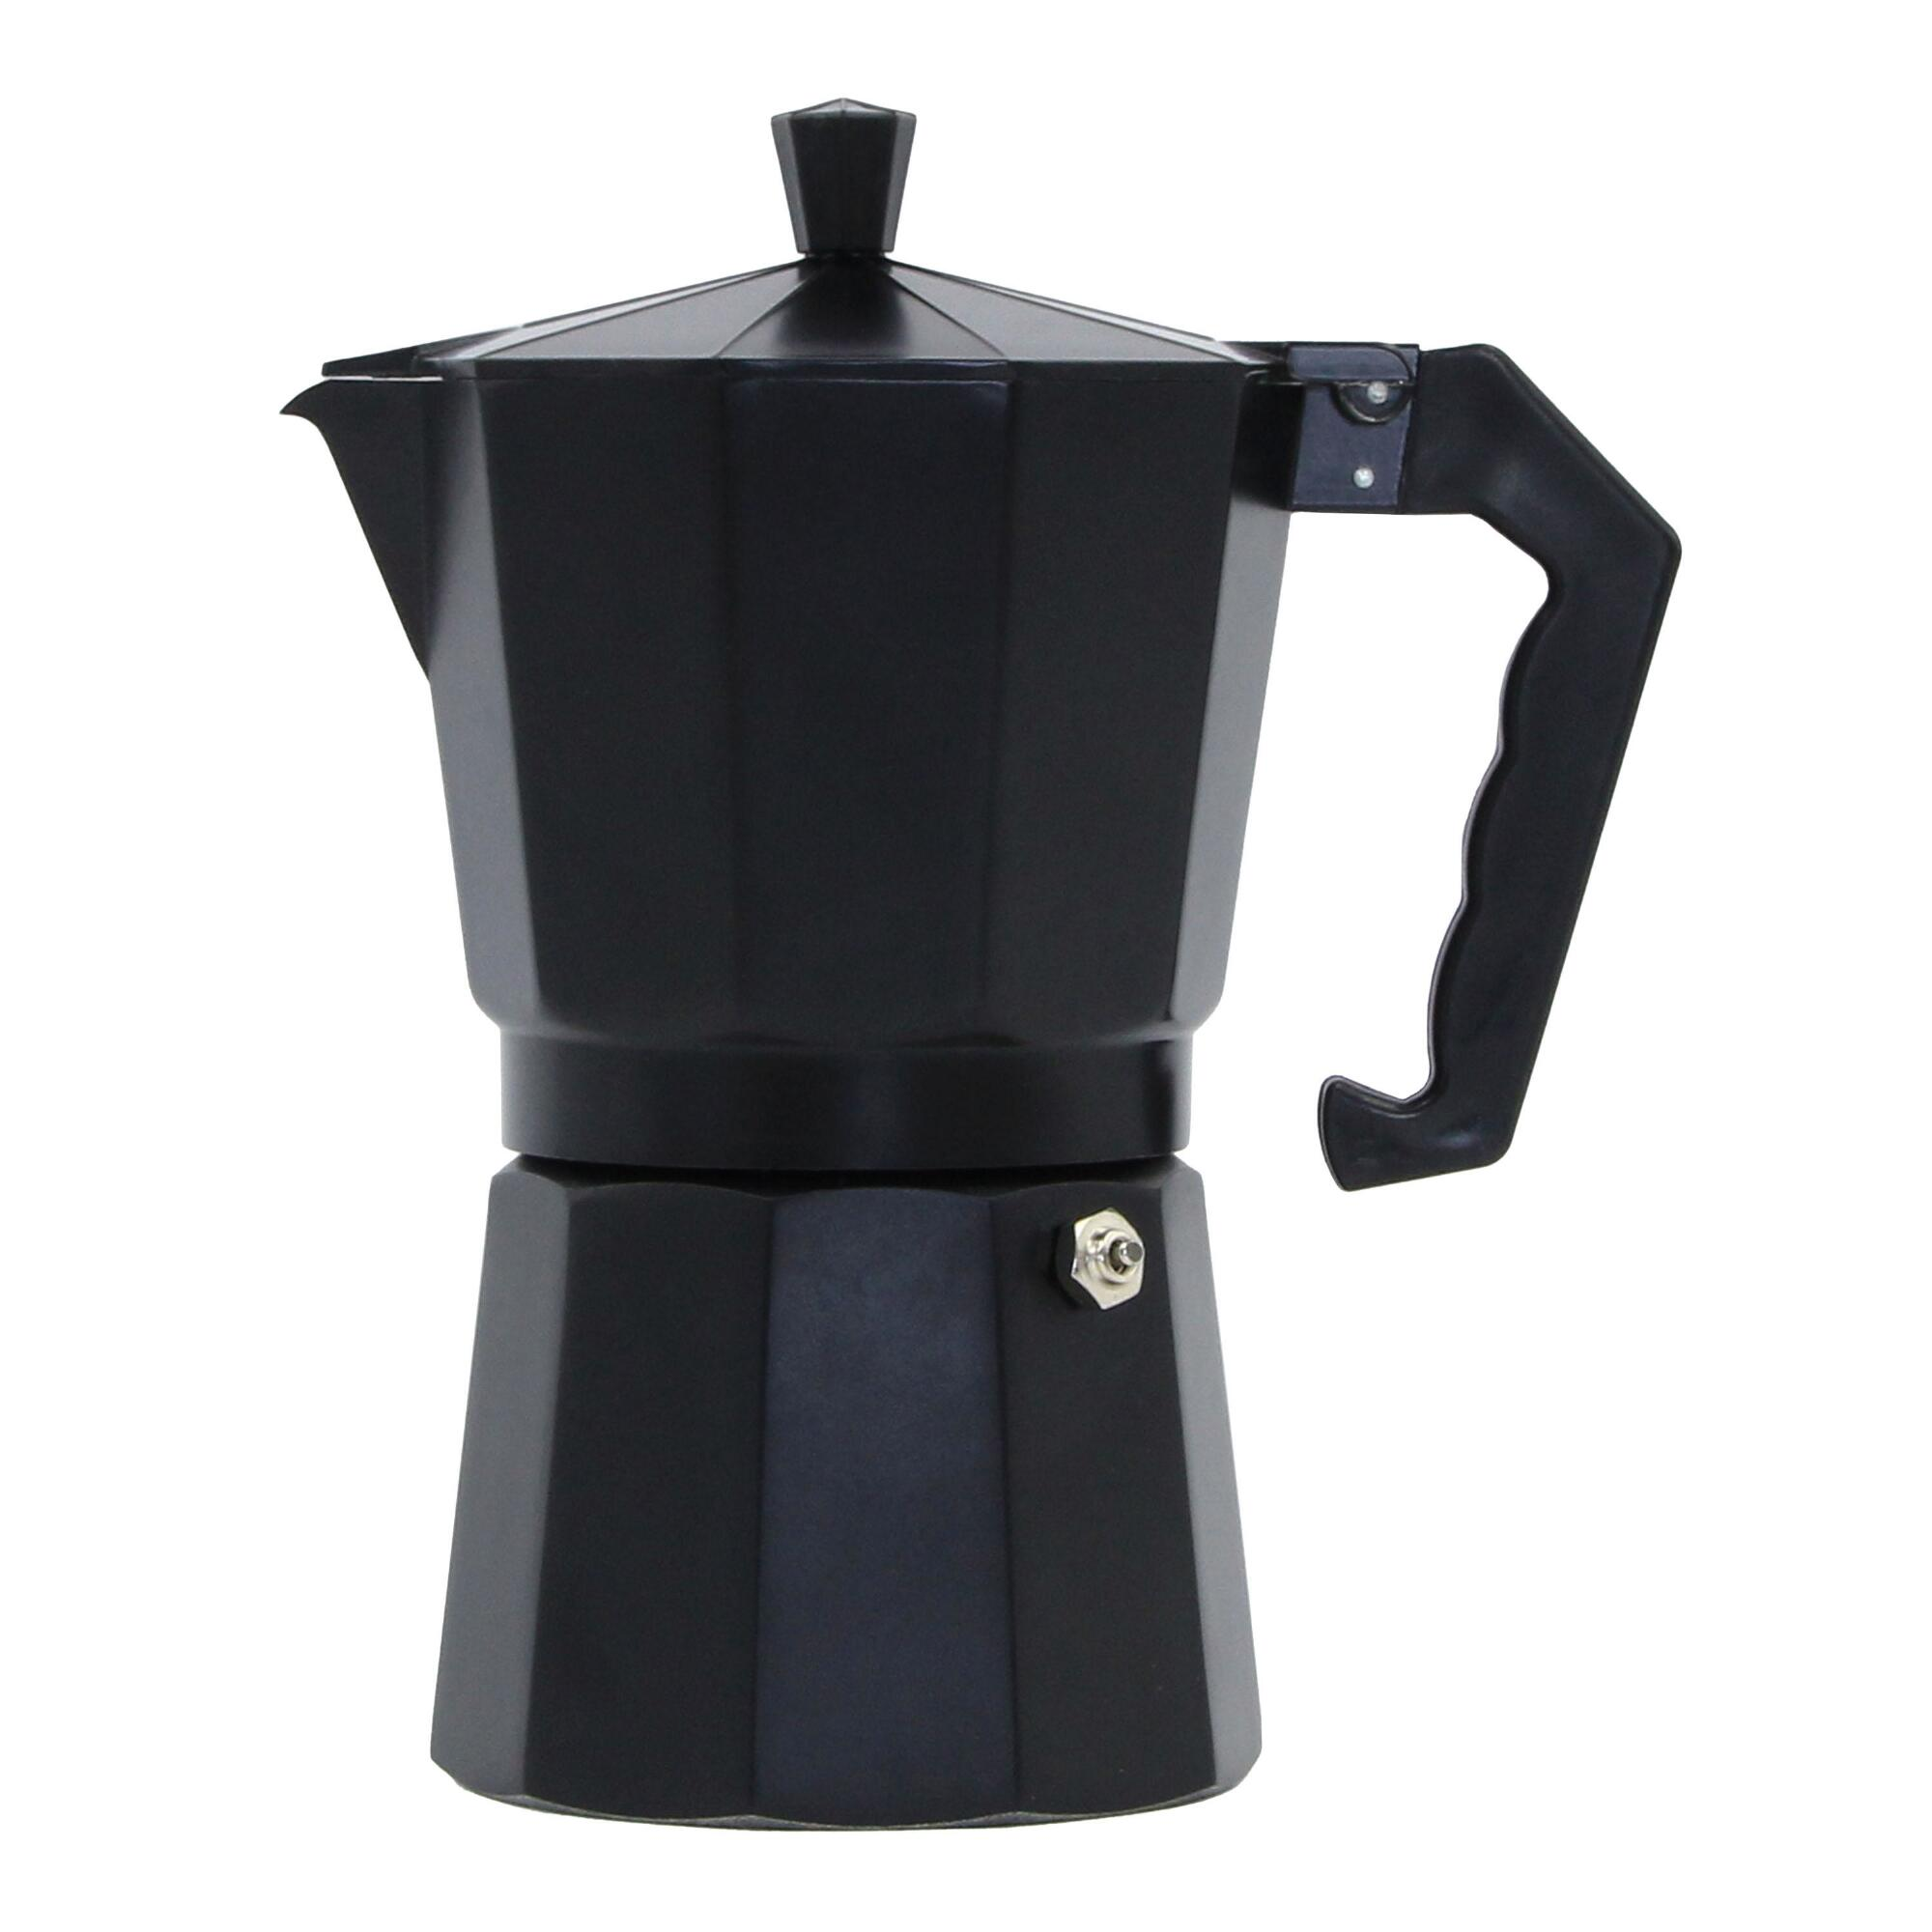 Coffee Pot For Coffee Maker : Black Matte 6-Cup Stovetop Moka Pot Espresso Maker World Market